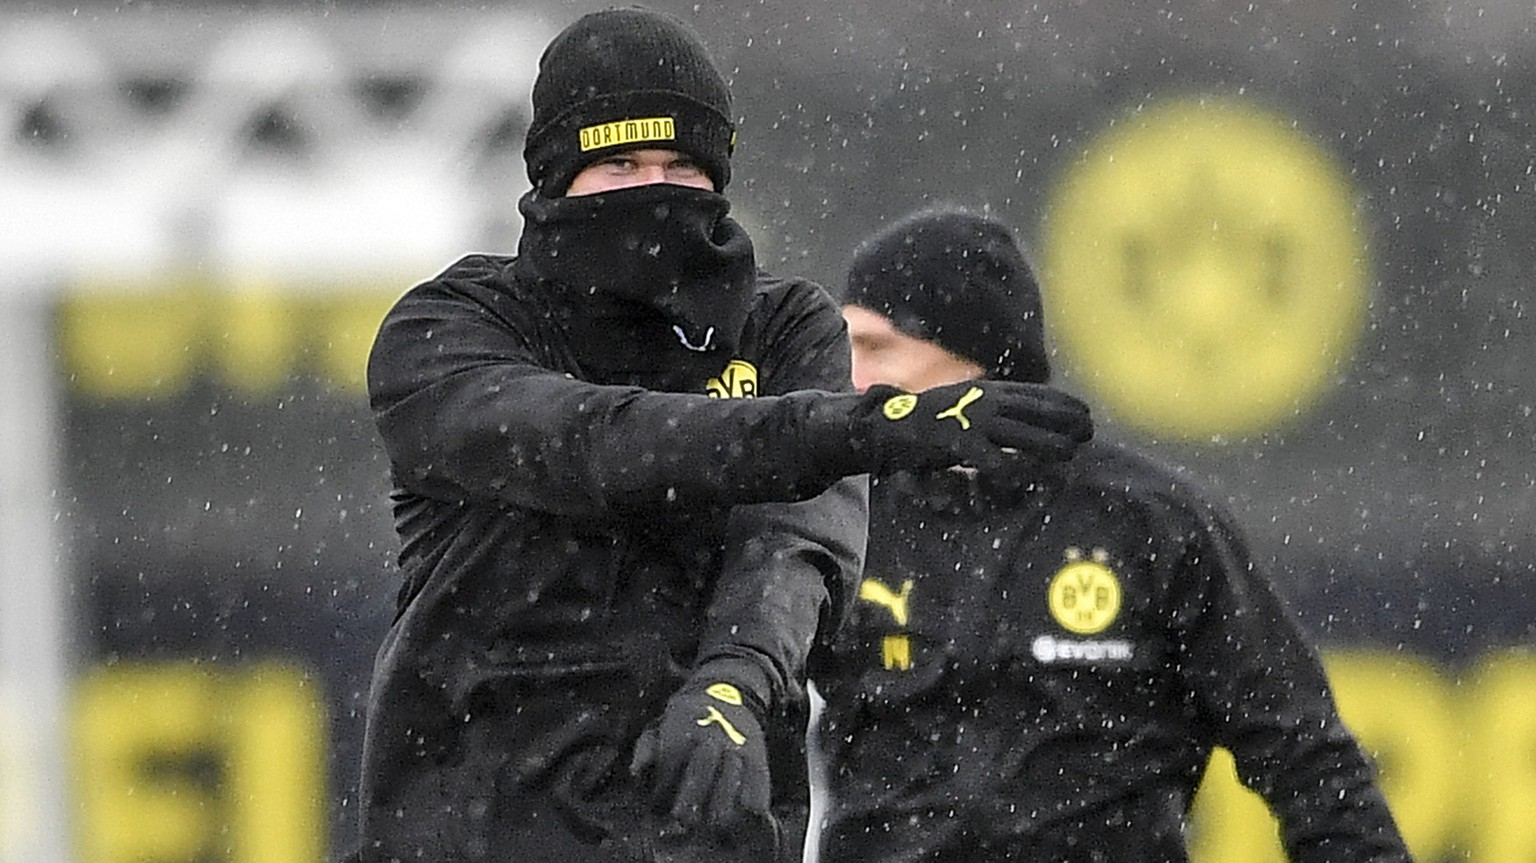 Dortmund's Erling Haaland exercises in the rain during the last training session prior the Champions League match in Dortmund, Germany, Monday, Feb. 17, 2020. Borussia Dortmund will play against Paris Saint Germain in a Champions League round of 16 first leg soccer match in Dortmund on Tuesday. (AP Photo/Martin Meissner)